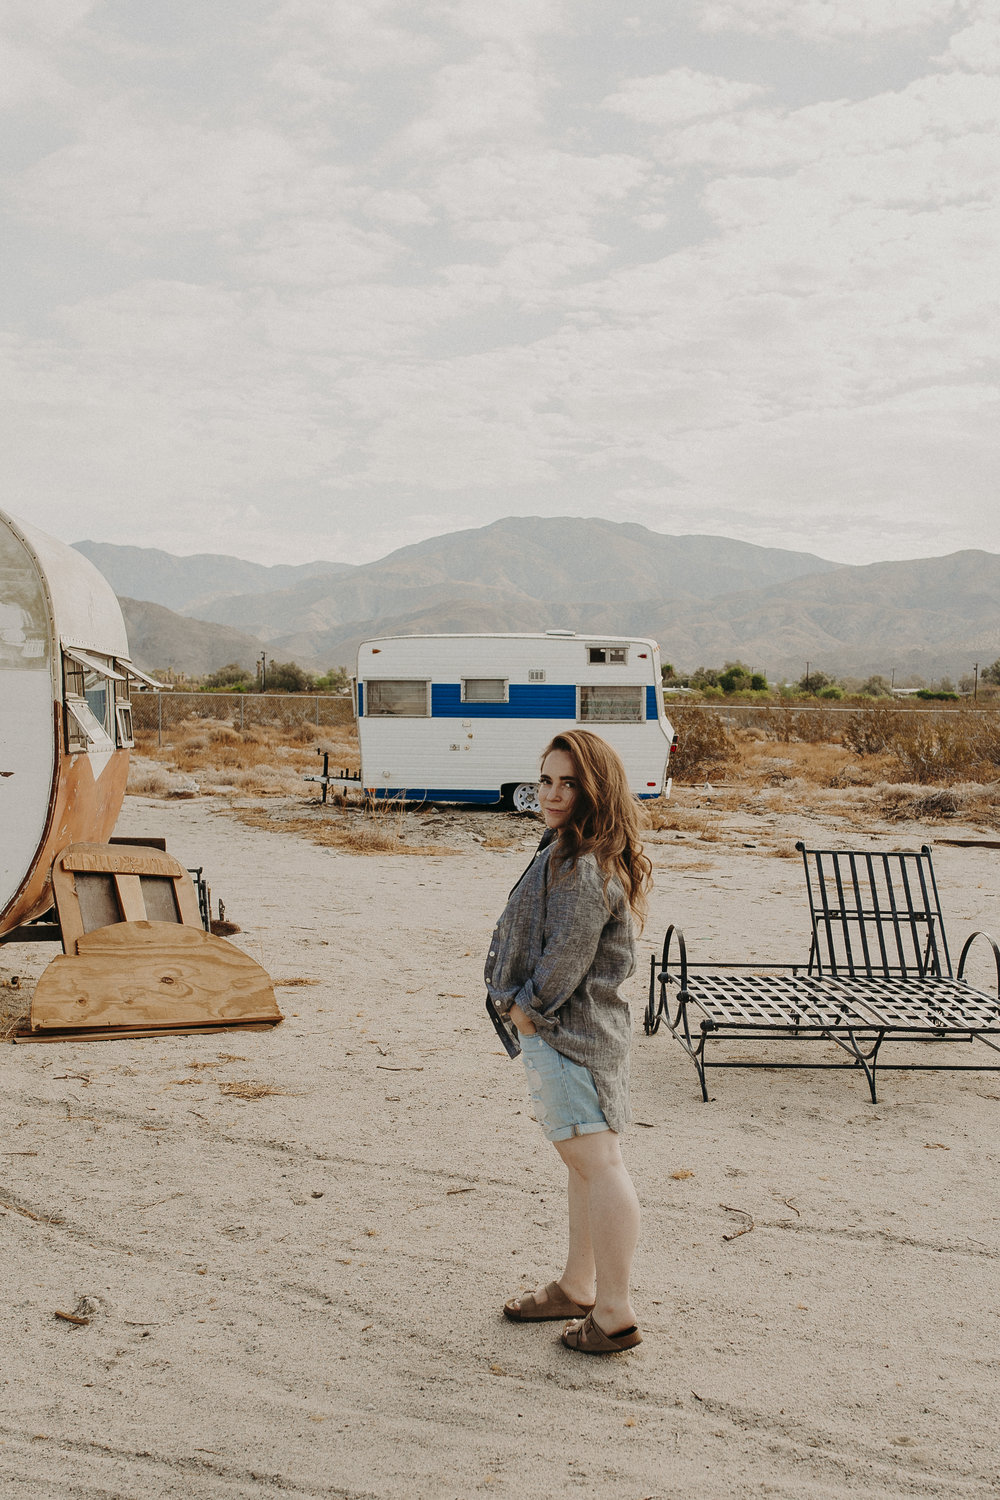 Palm-Springs-Airbnb-Airstream-17.jpg